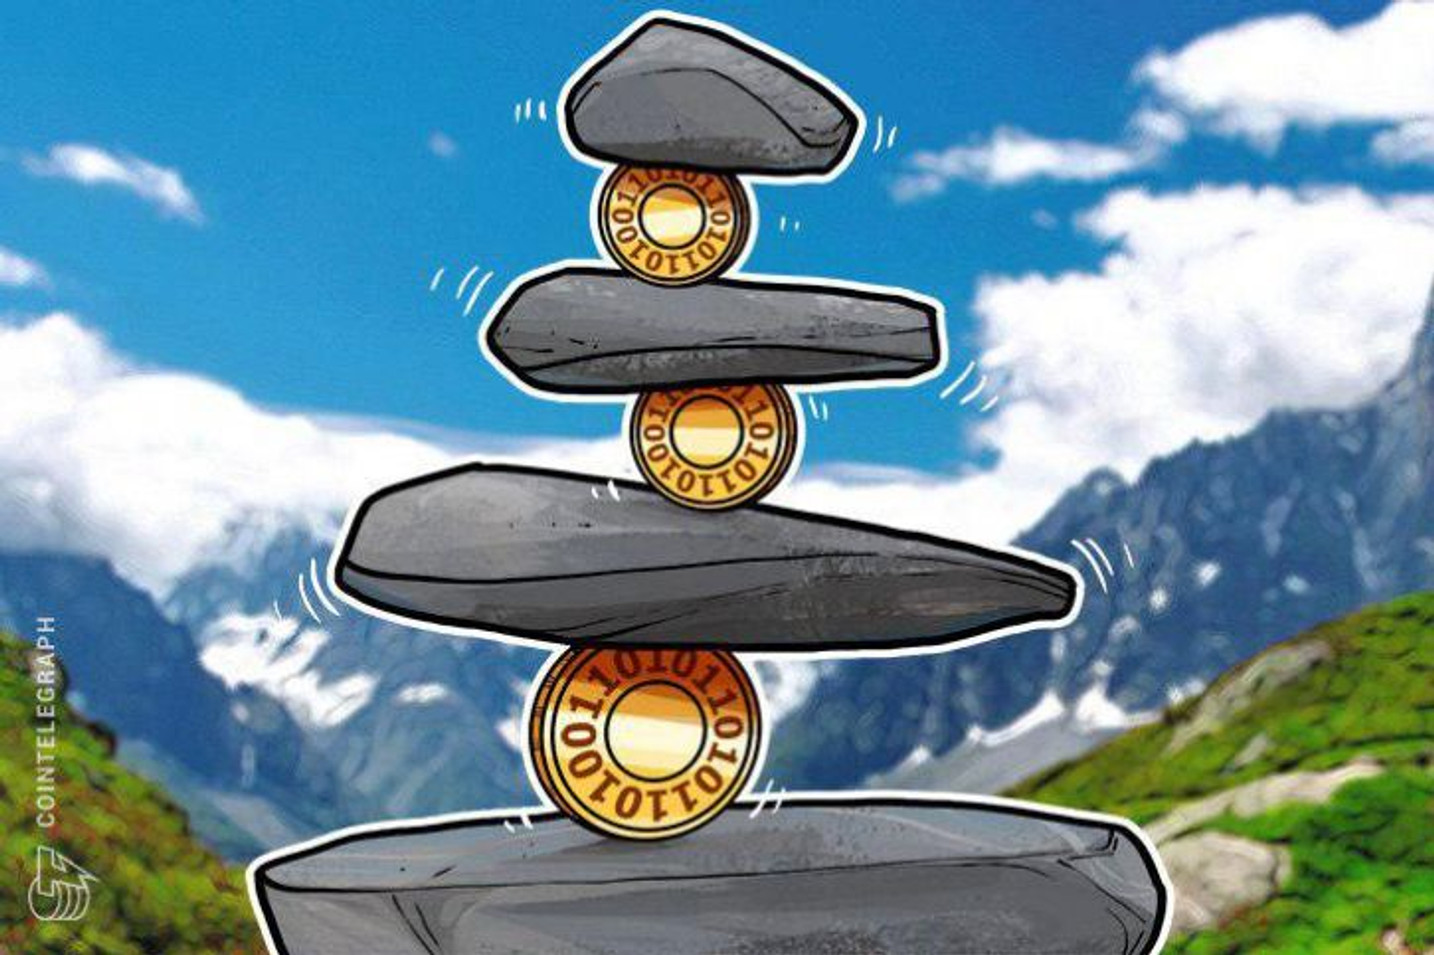 US: Wyoming Set Precedent By Creating New Asset Class For Cryptos, Hopes to Inspire Feds